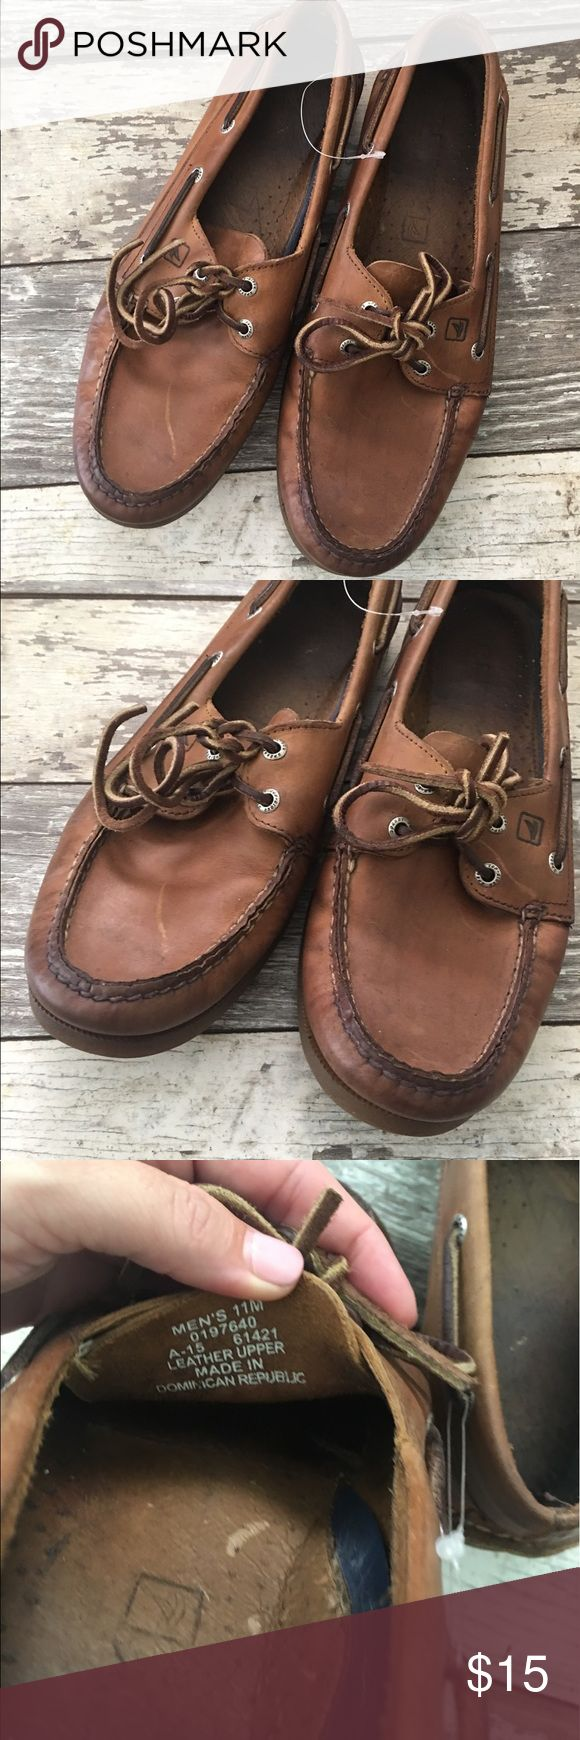 Sperry dock boat deck shoes men's 11 original Sperry boat shoes. Vintage broken in already. Brown leather. Size 11 men's. Sperry Shoes Boat Shoes